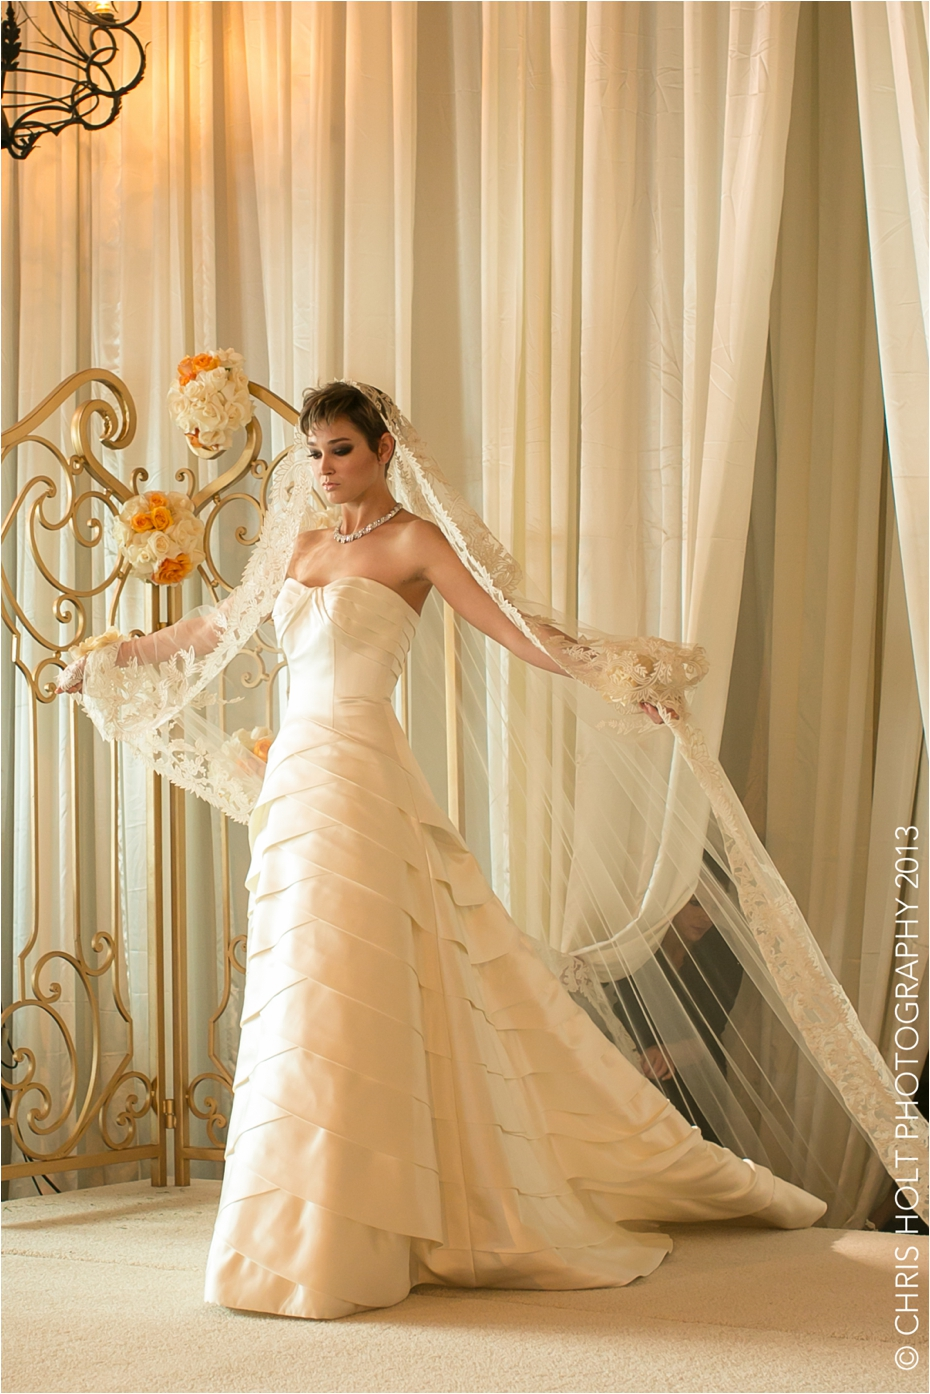 SOOLIPWEDDING_009.jpg